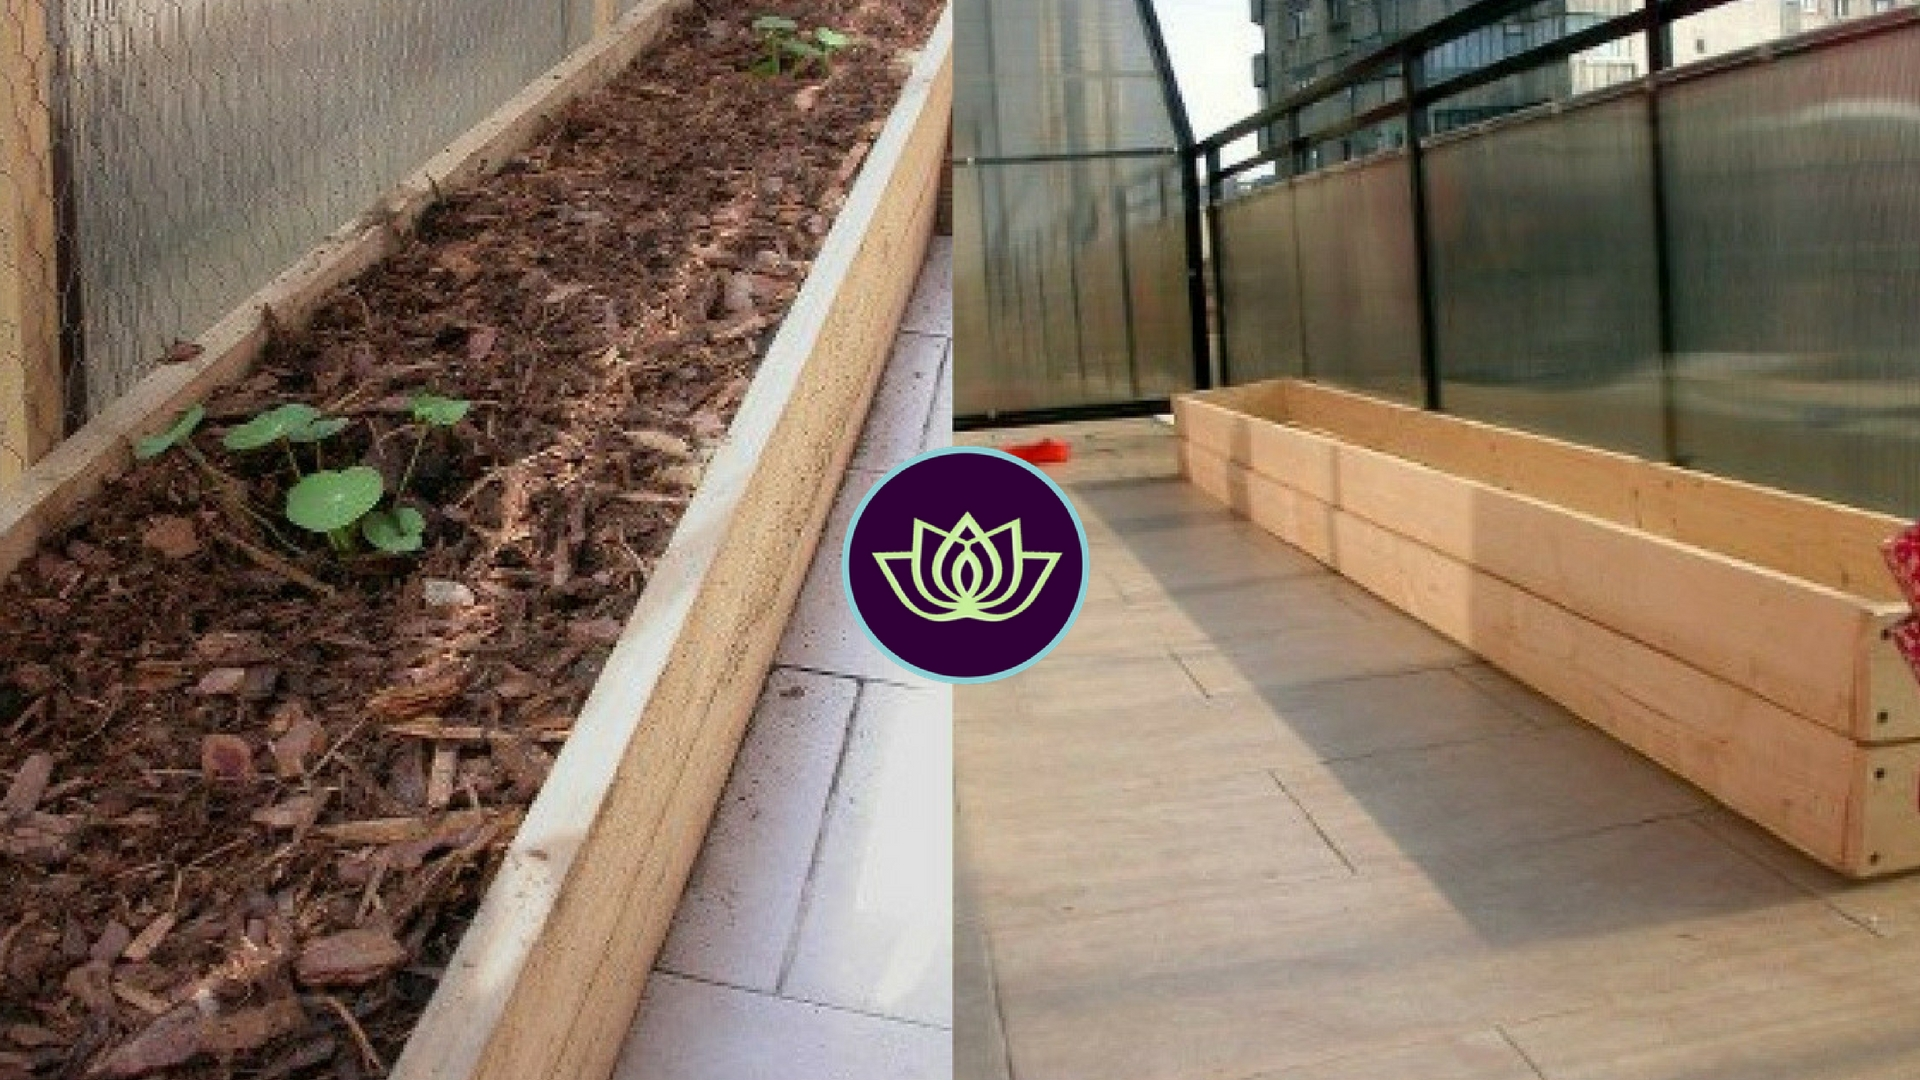 How to: Make a wooden raised planter for your balcony (any size)